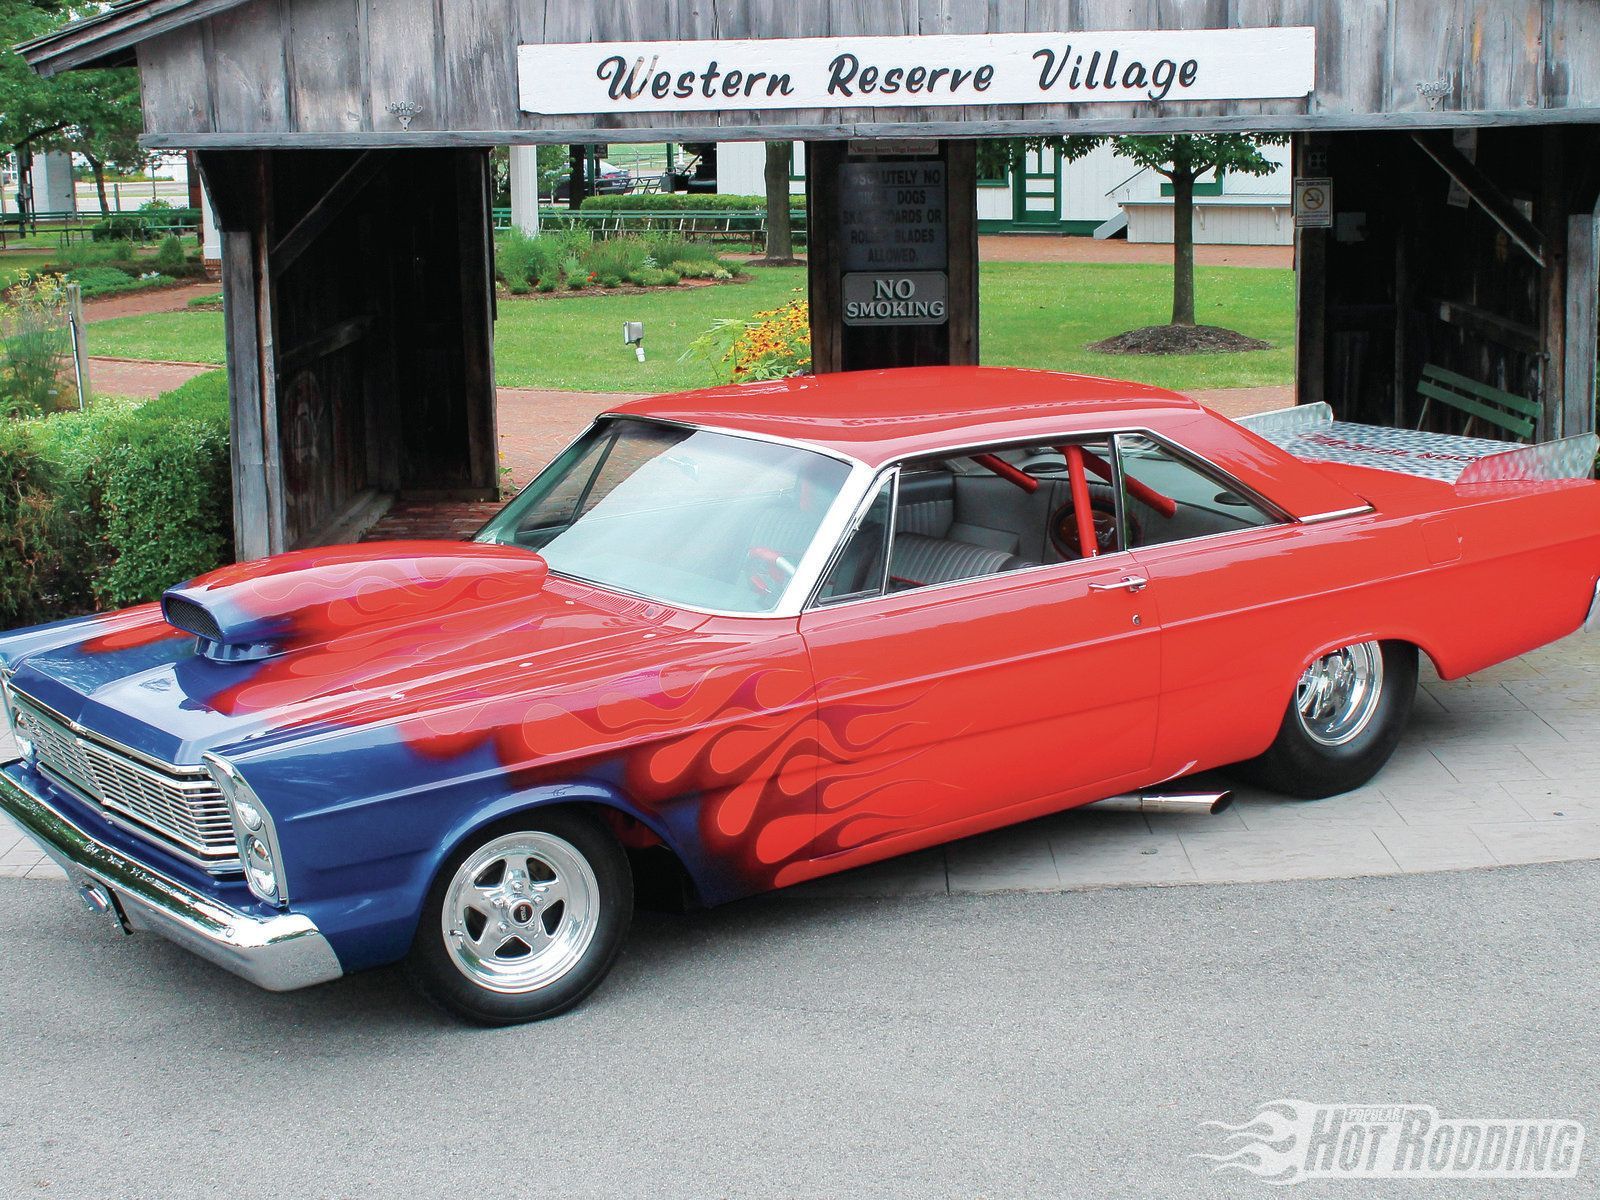 60s Galaxie 500 1965 Ford Galaxie 500 Drag Racing Hot Rods